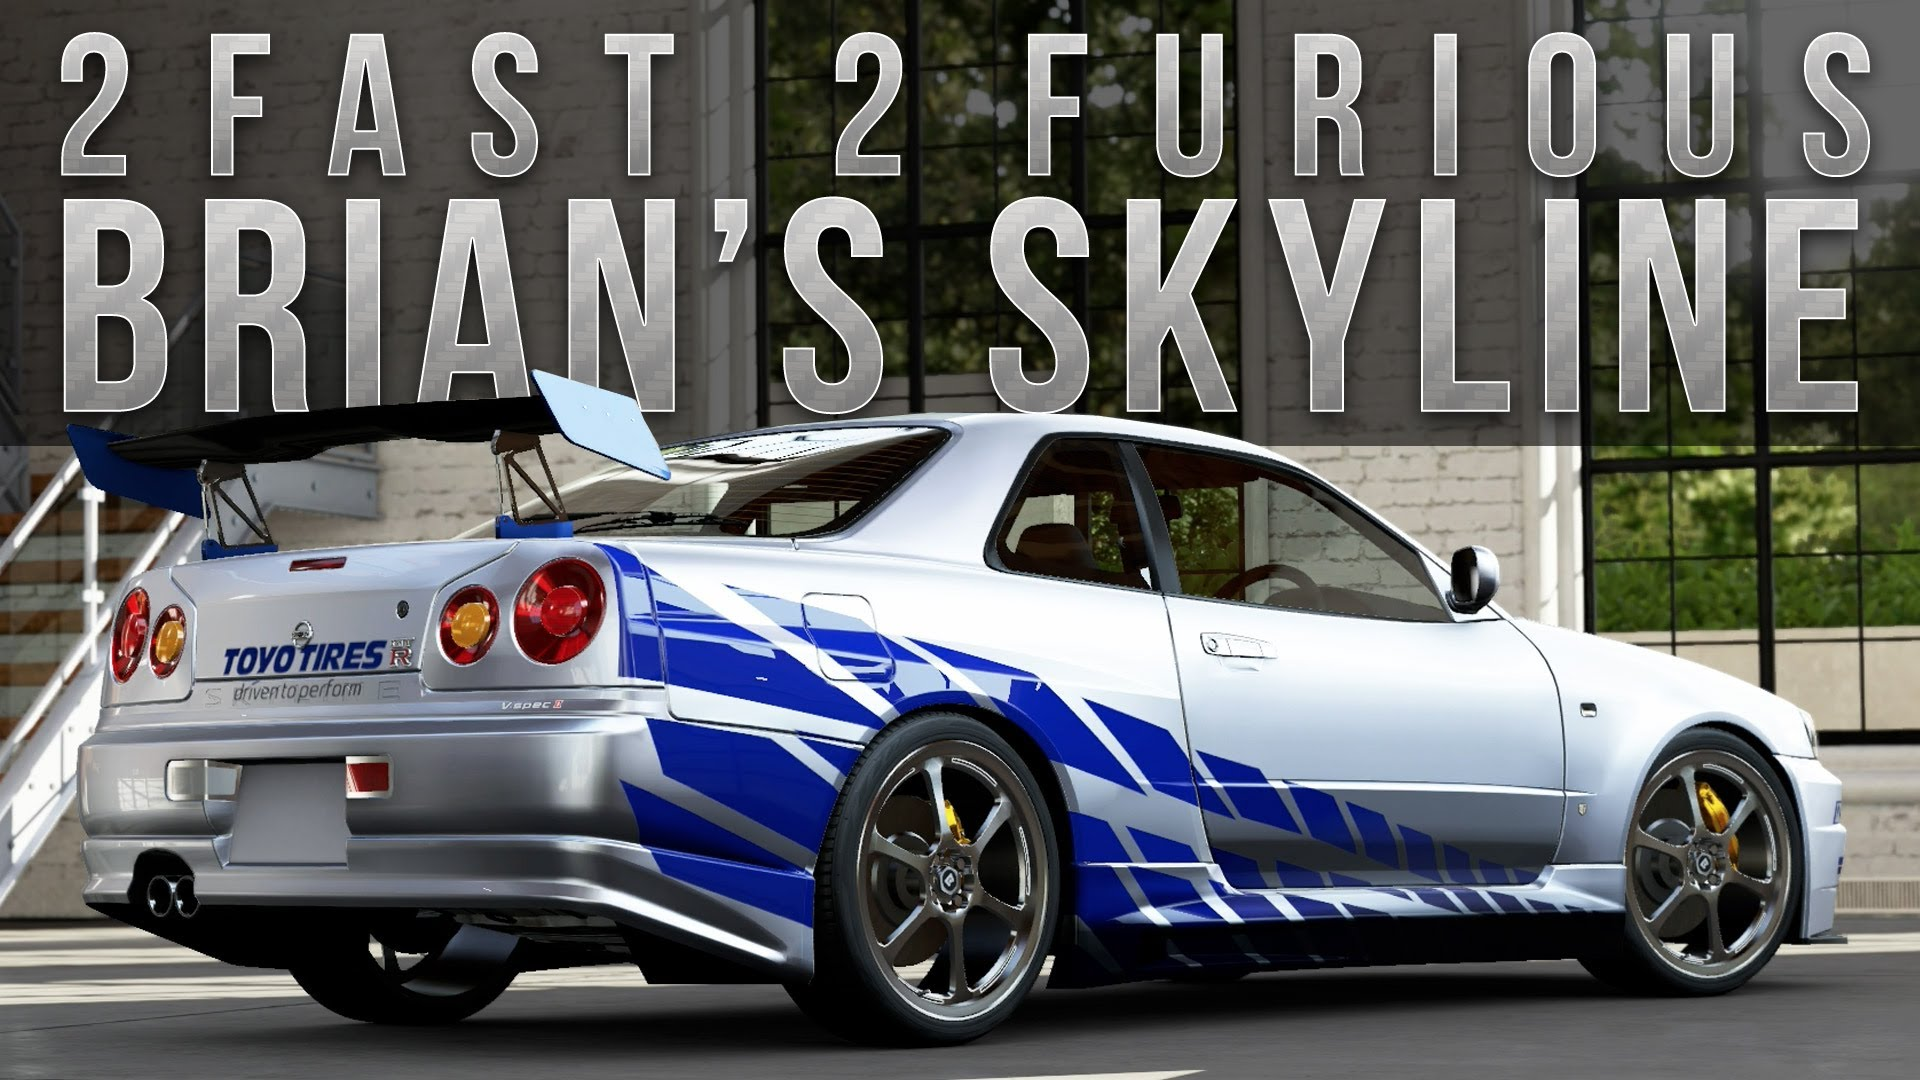 nissan skyline fast and furious 6. 2 fast furious brians skyline r34 nissan and 6